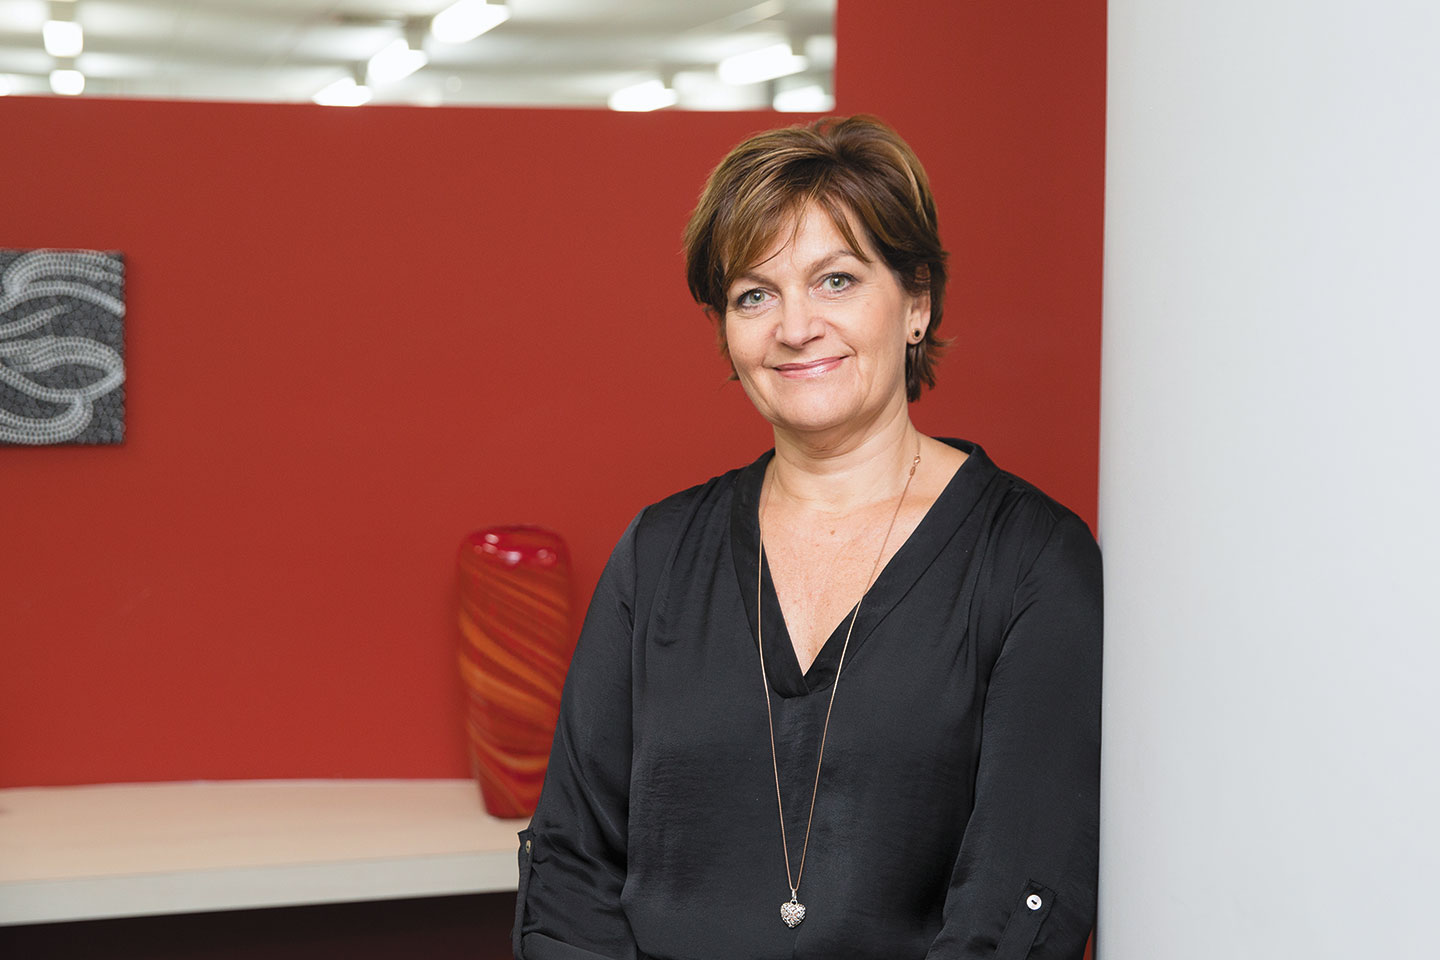 Volunteering WA CEO Tina Williams. Photo: Attila Csaszar/Business News